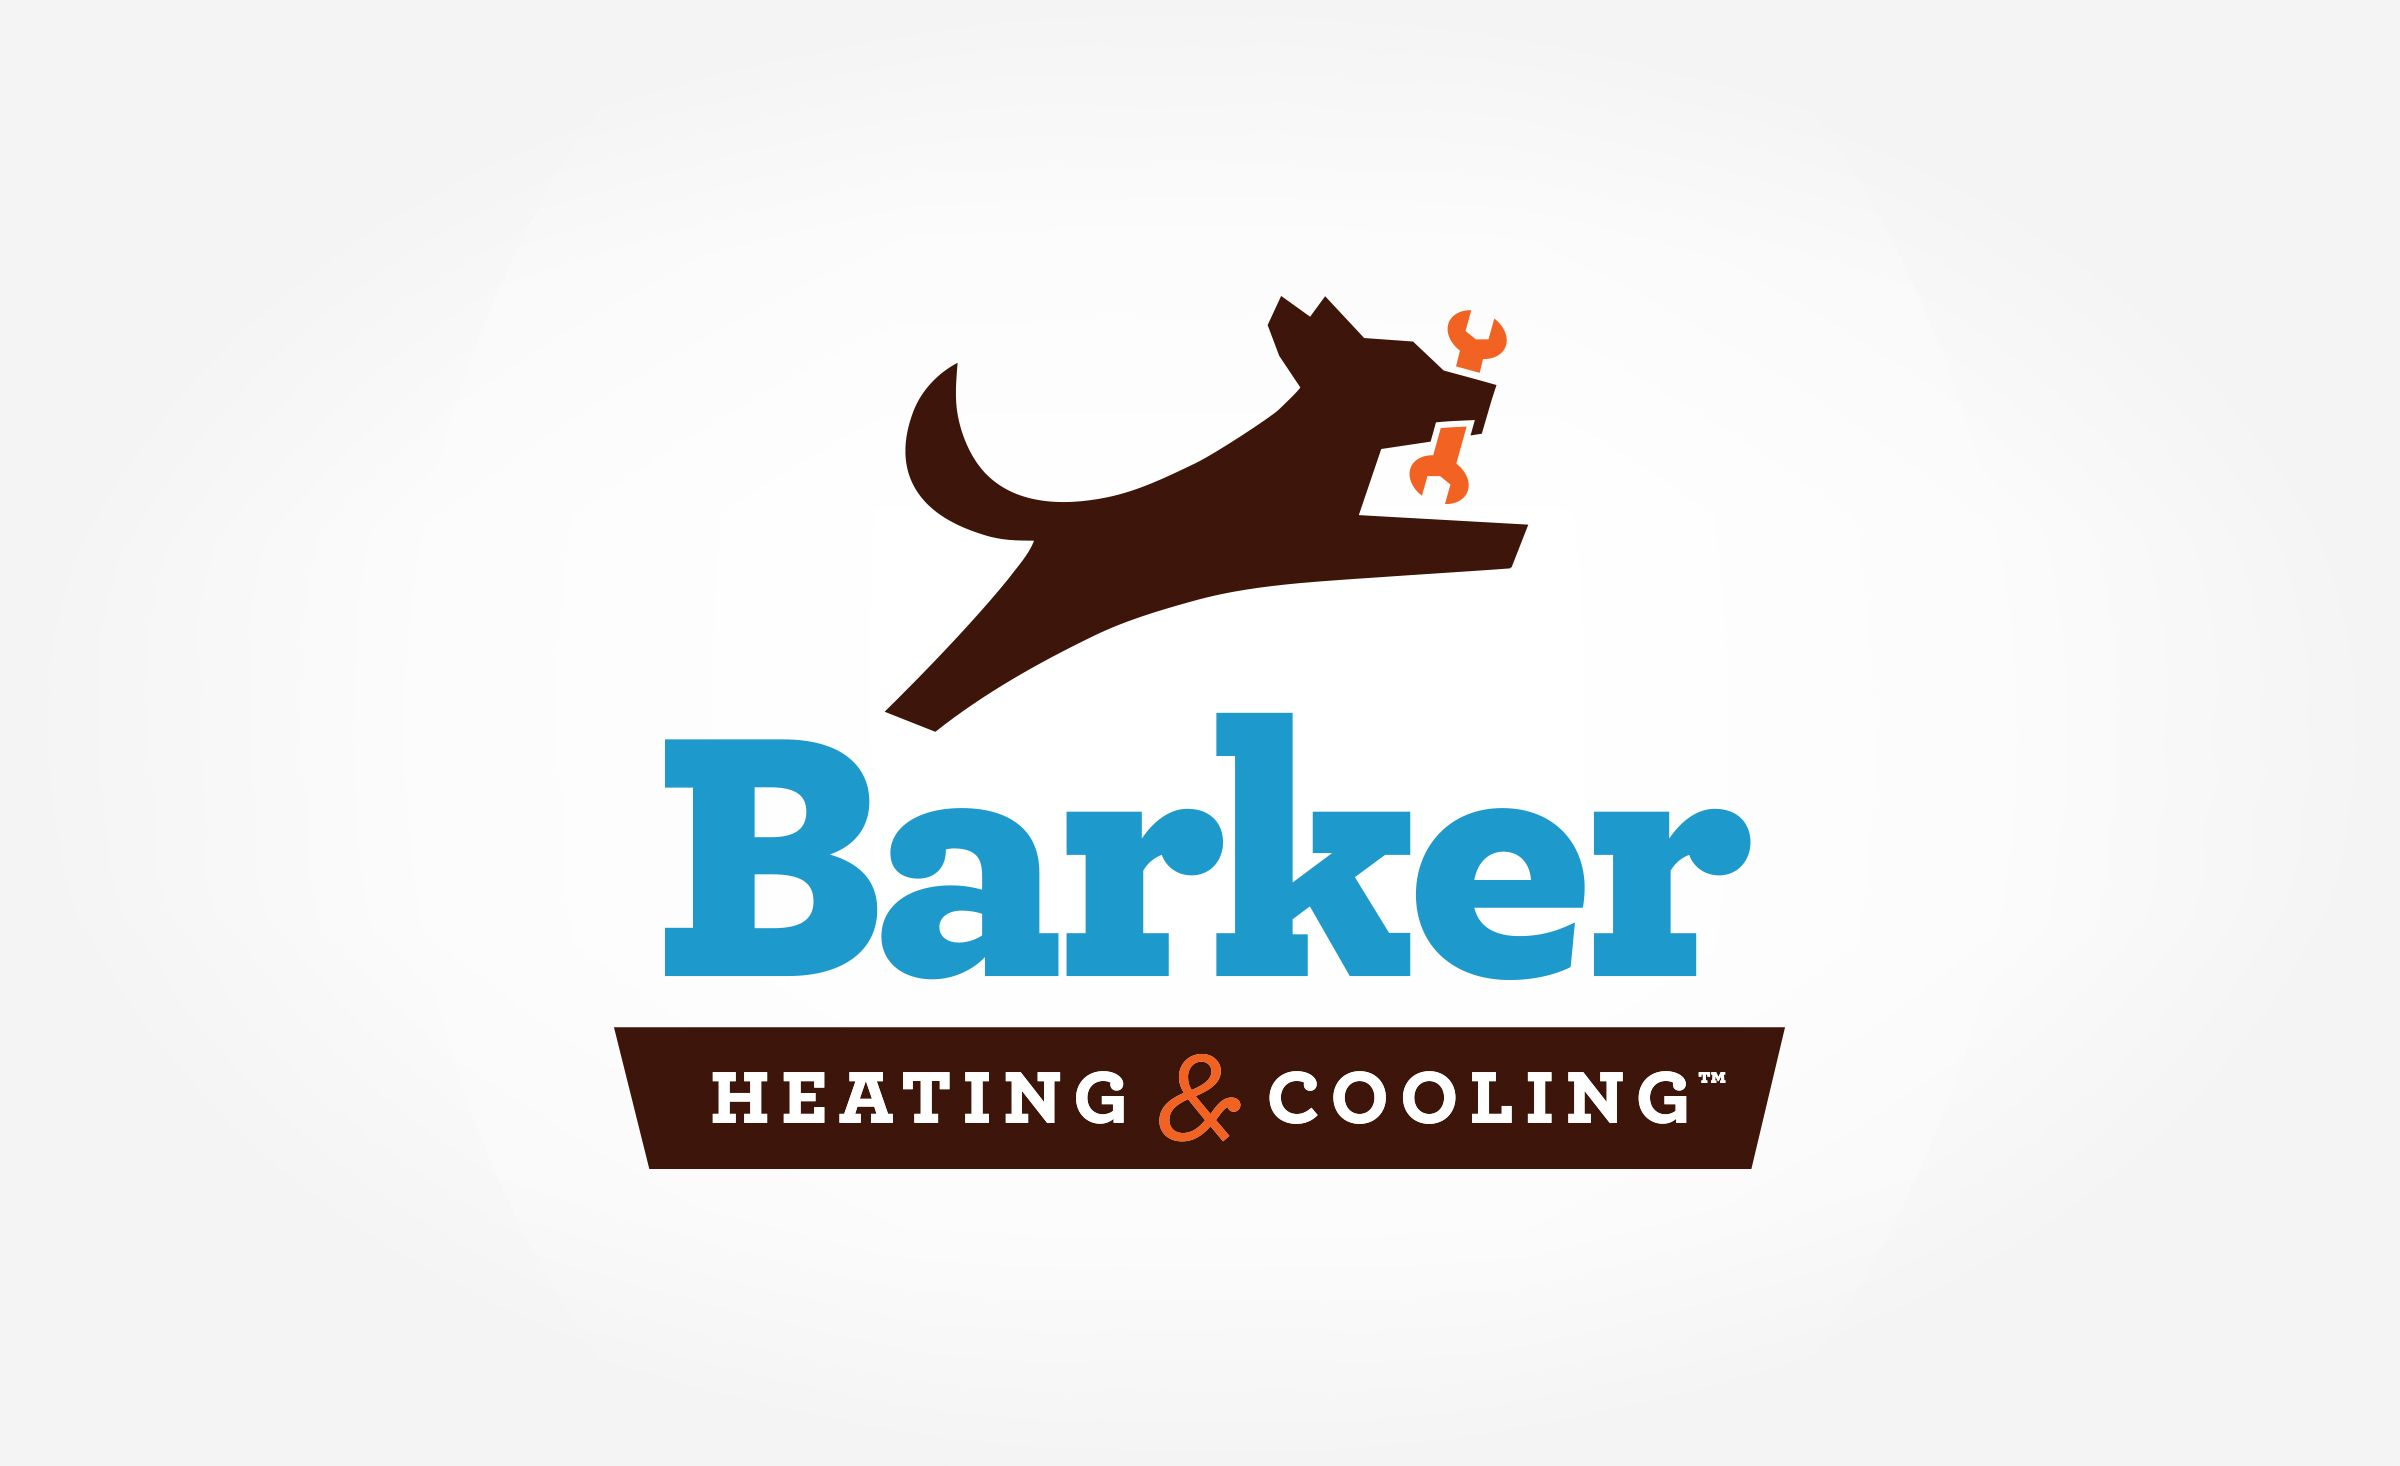 Logo Design For Barker Heating Cooling Nj Advertising Agency